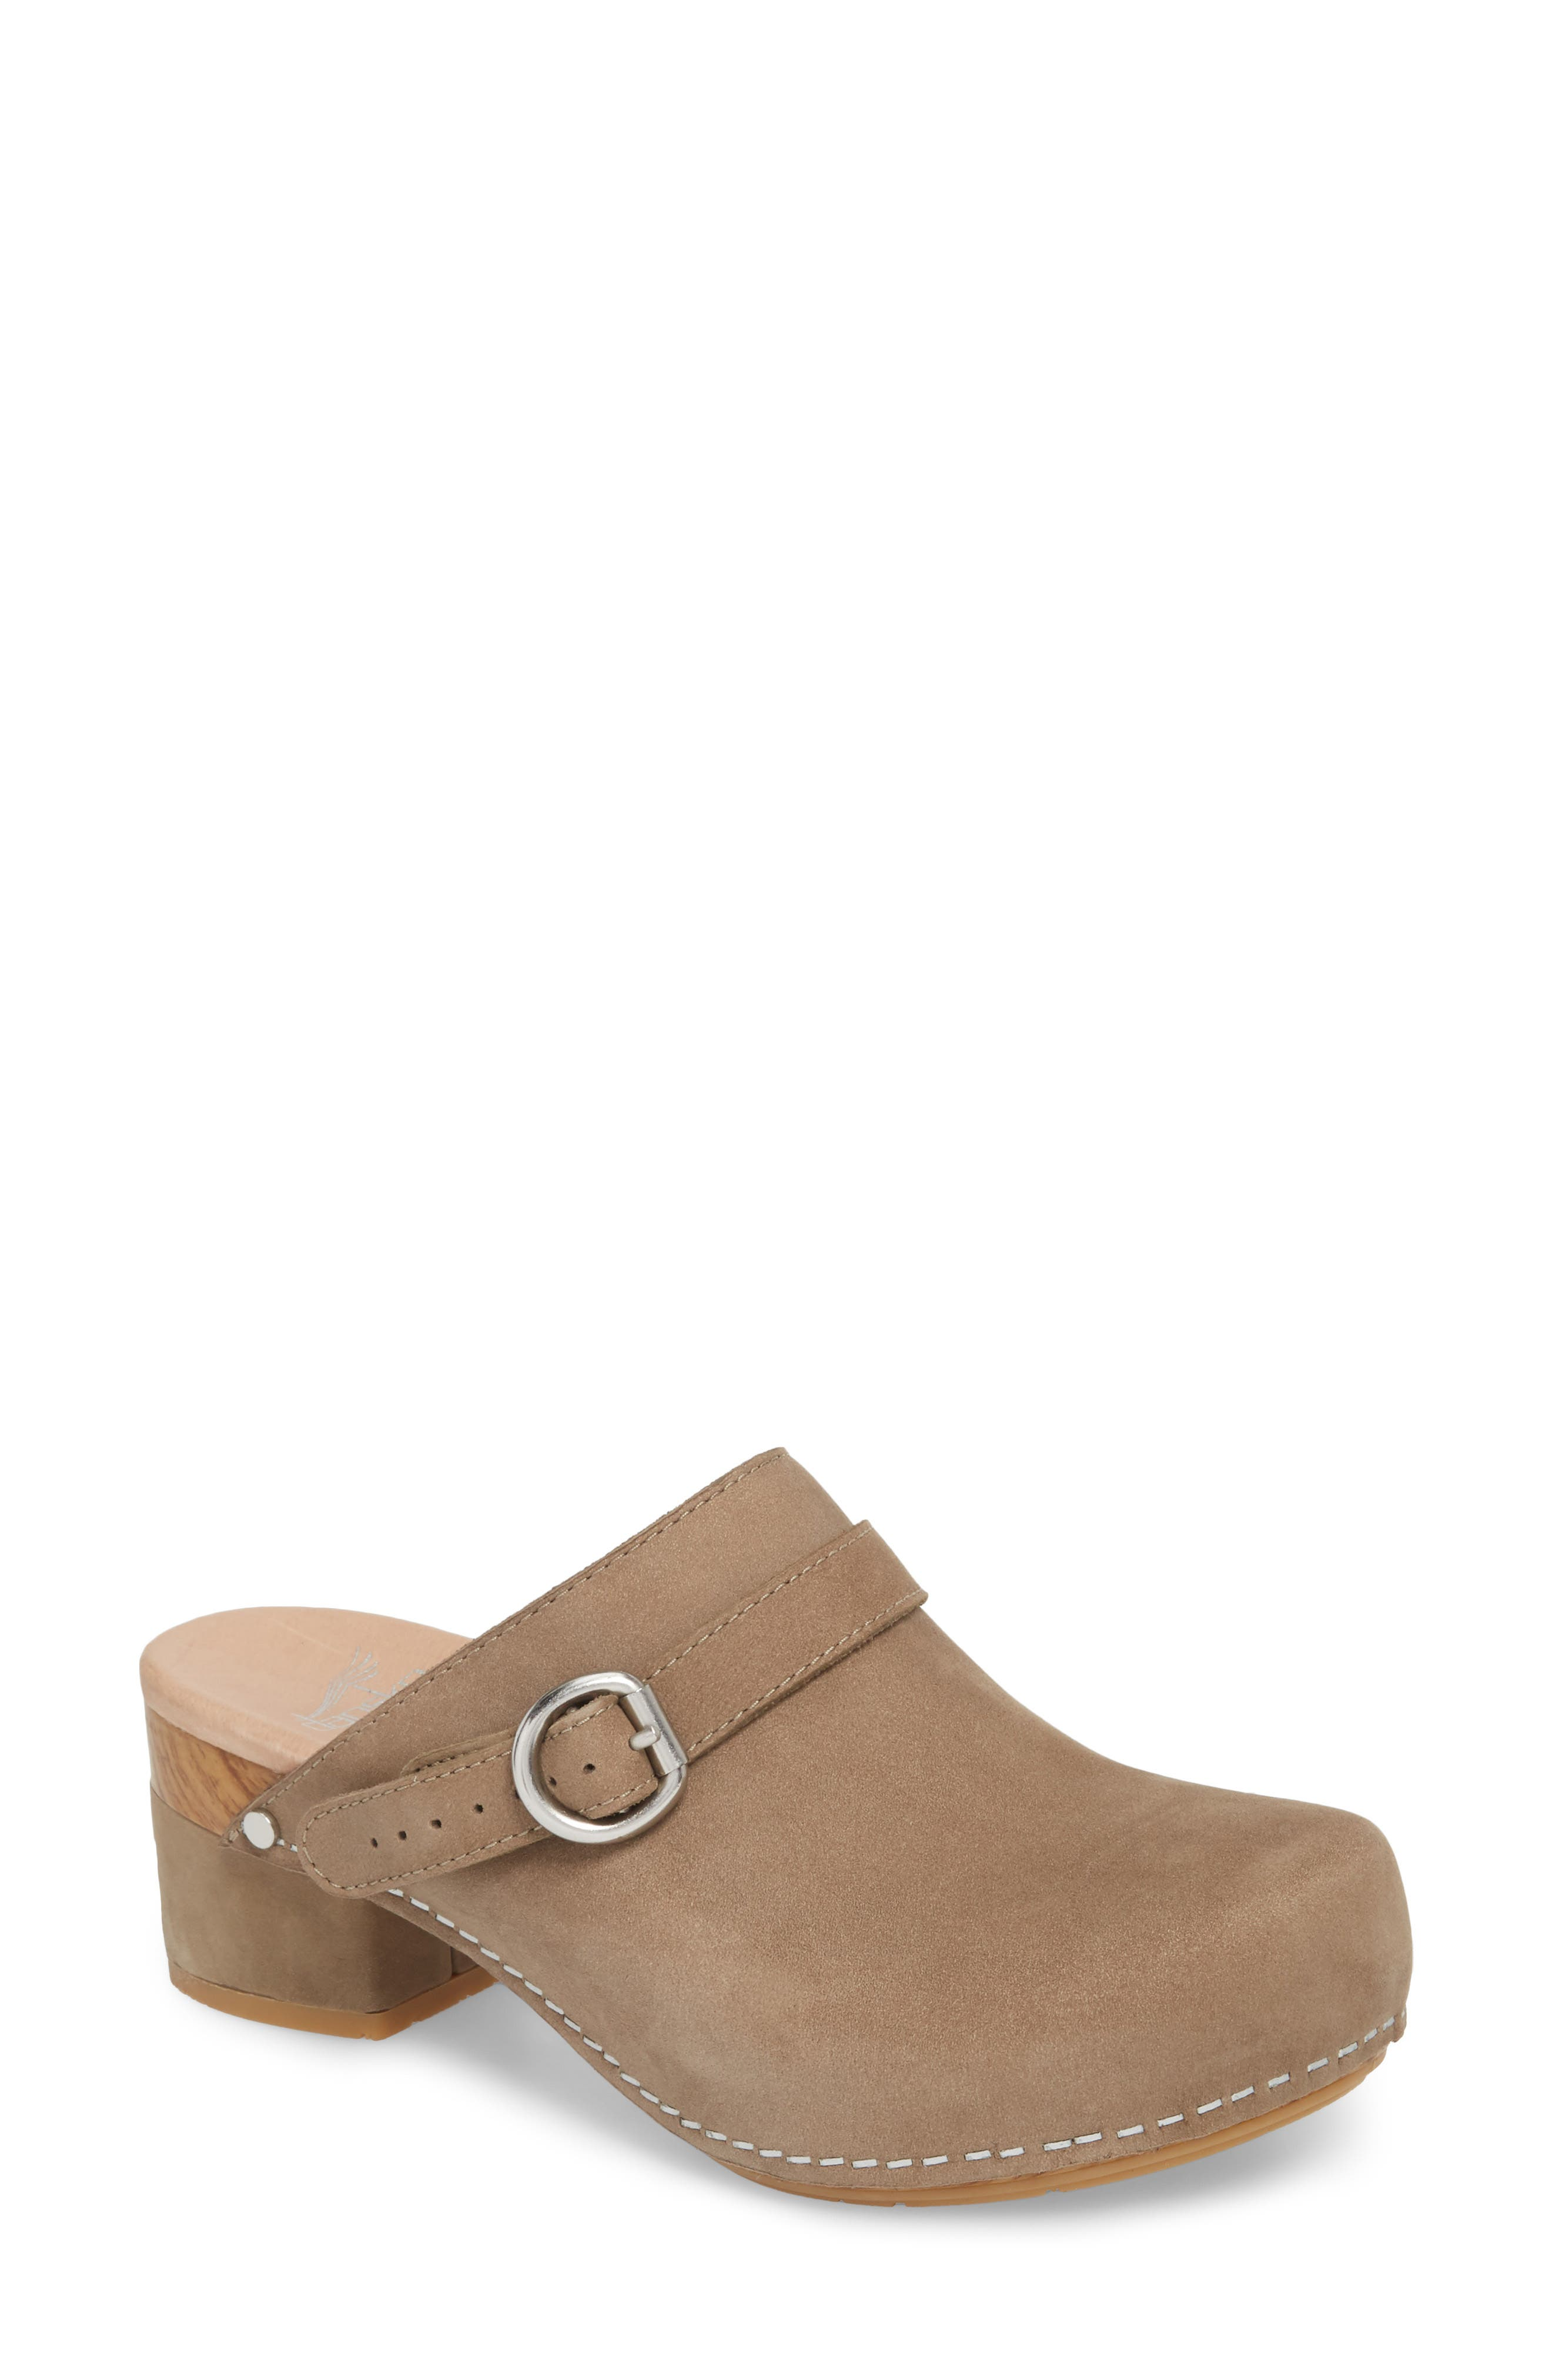 Marty Clog,                             Main thumbnail 1, color,                             Taupe Milled Nubuck Leather